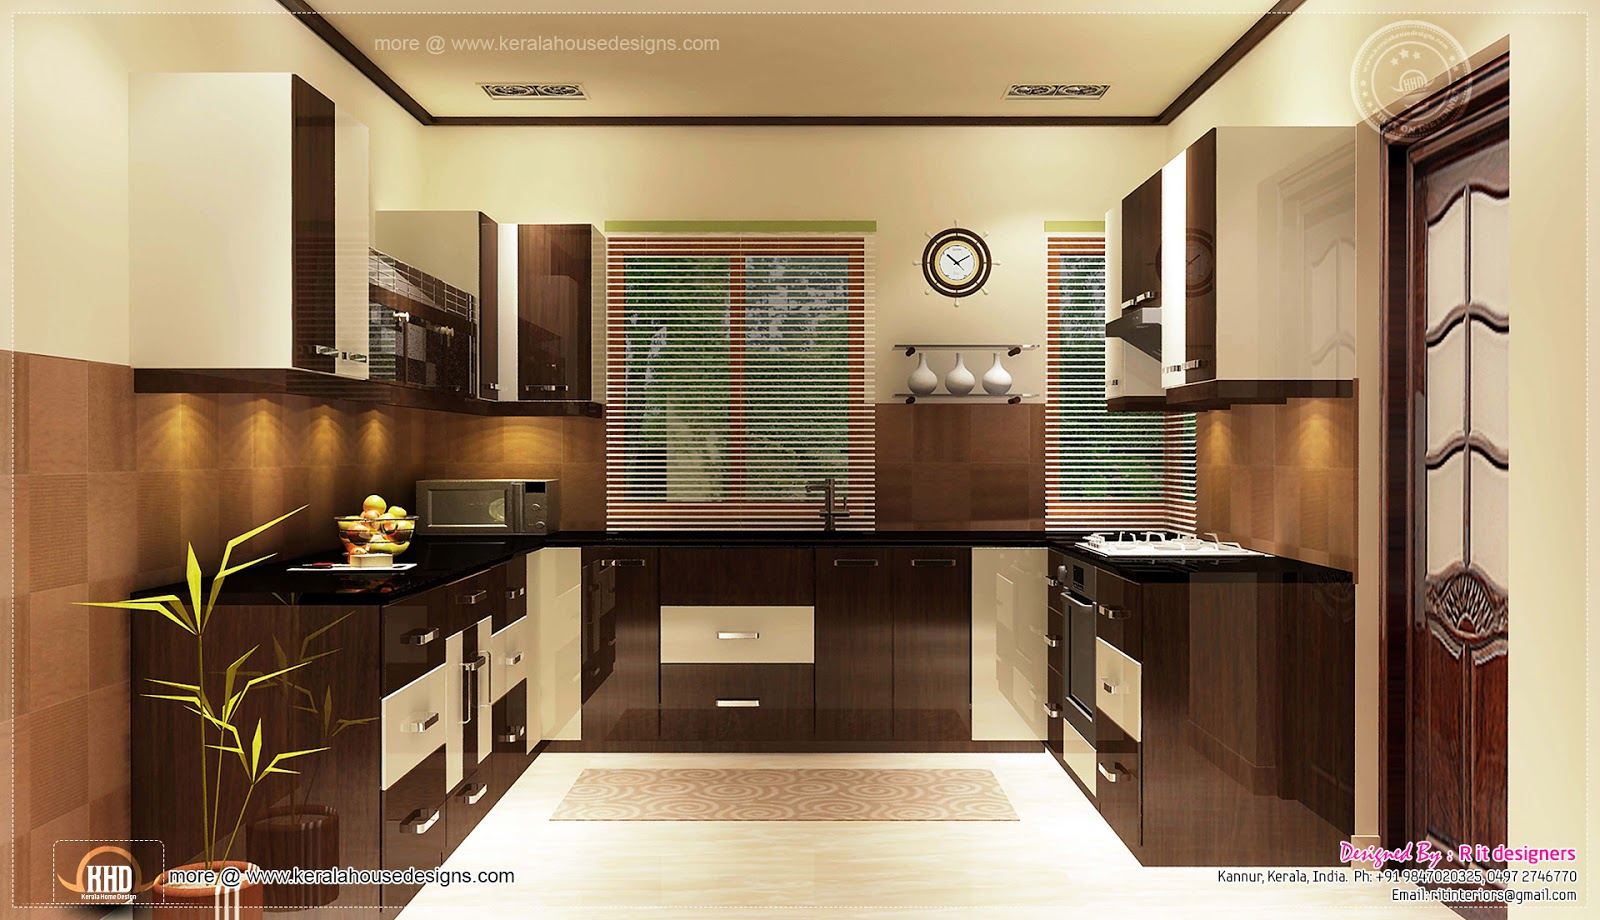 Home interior designs by rit designers kerala home design and floor plans - Home design inside ...